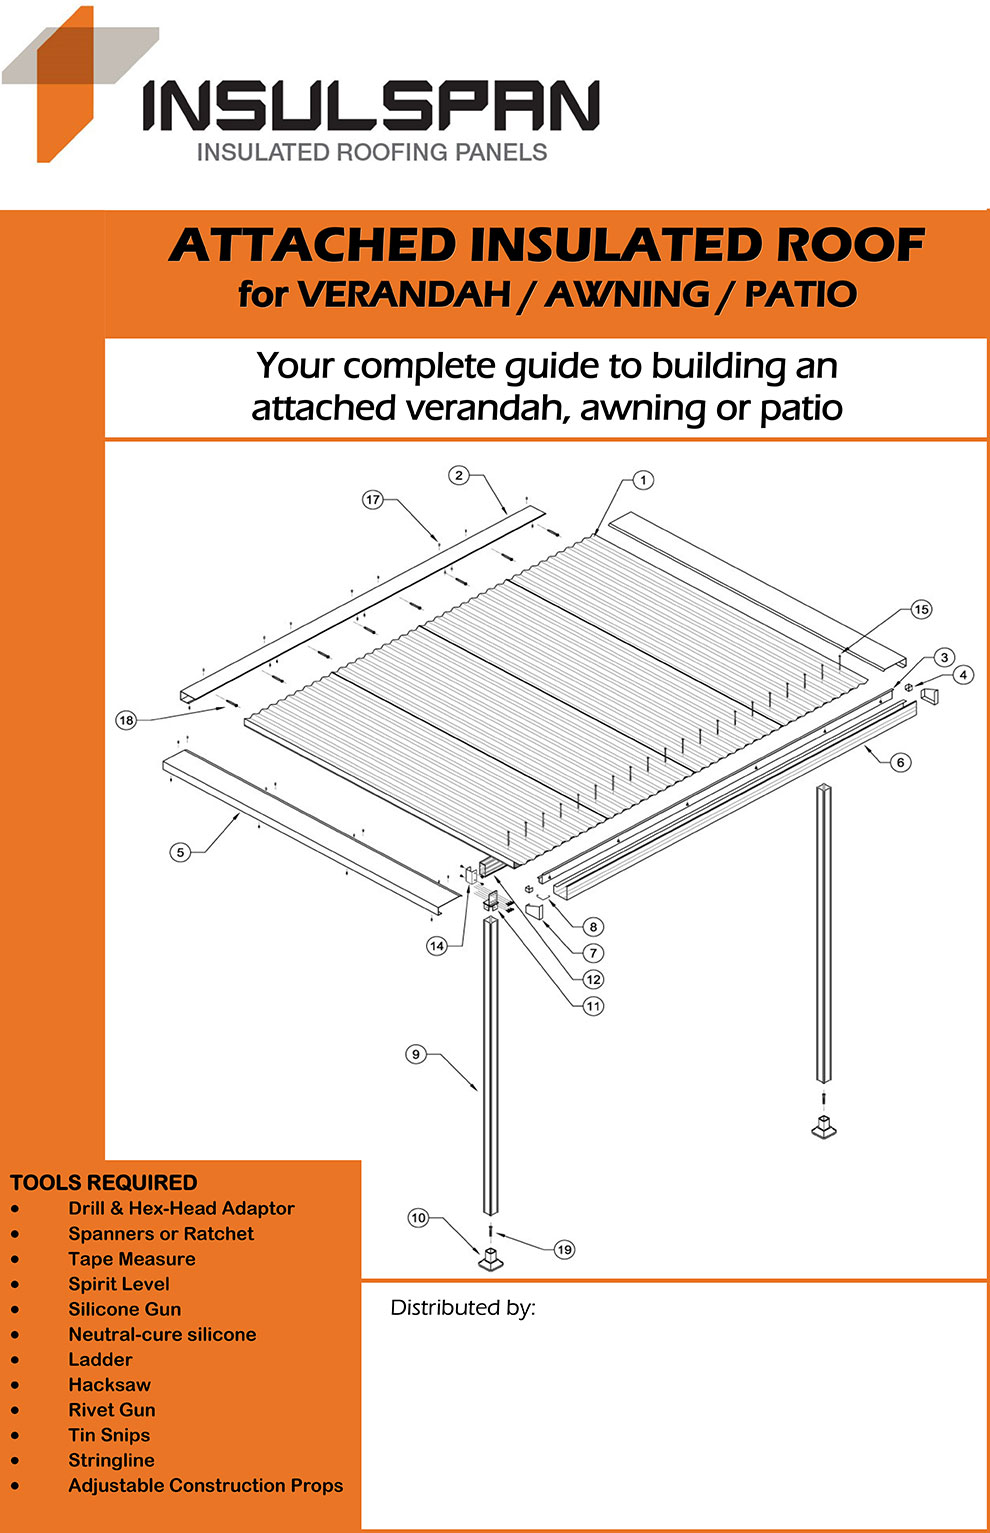 INSULSPAN insulated patio panels - Complete guide to building an attached insulated panel roof for verandah, awning or patio.